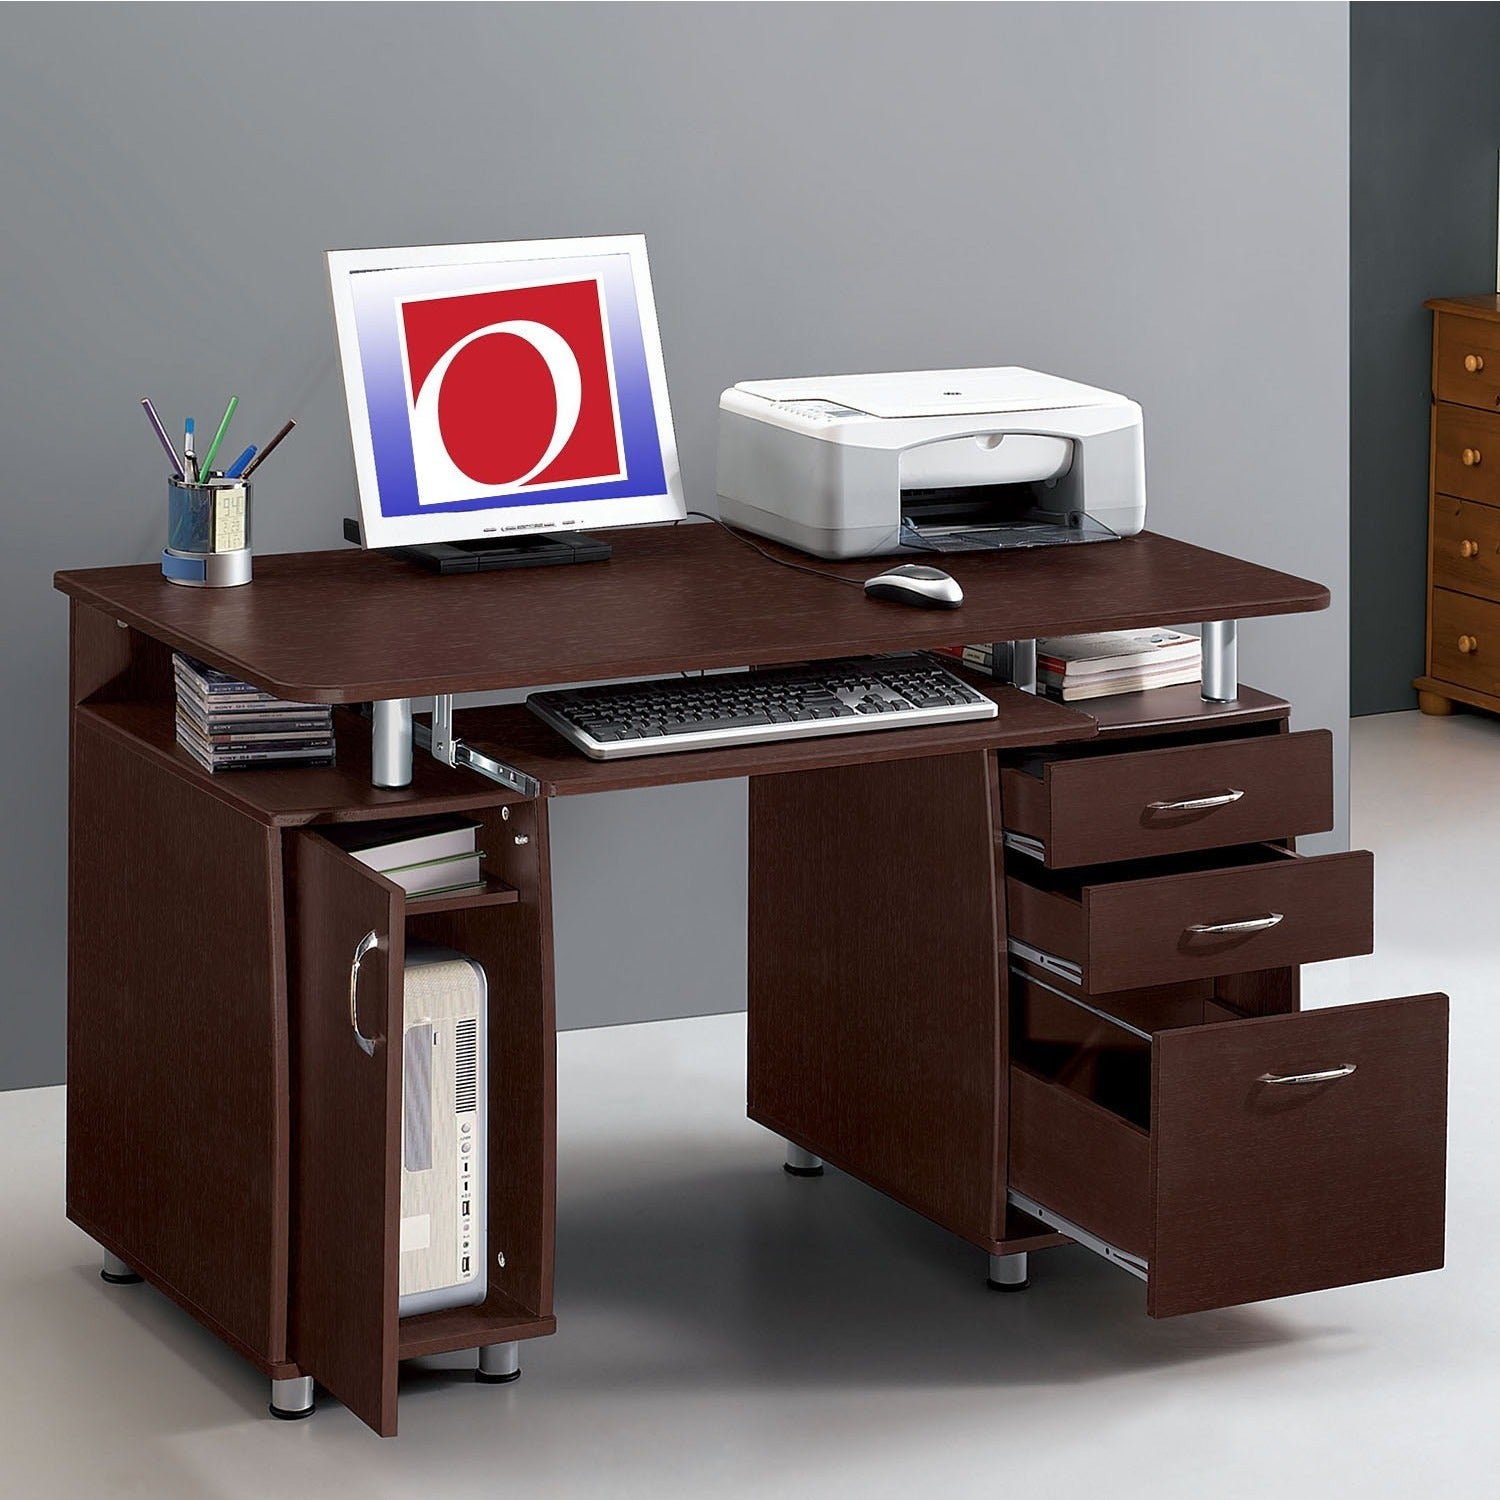 Modern Designs Multifunctional Office Desk with File Cabinet & Shop Modern Designs Multifunctional Office Desk with File Cabinet ...